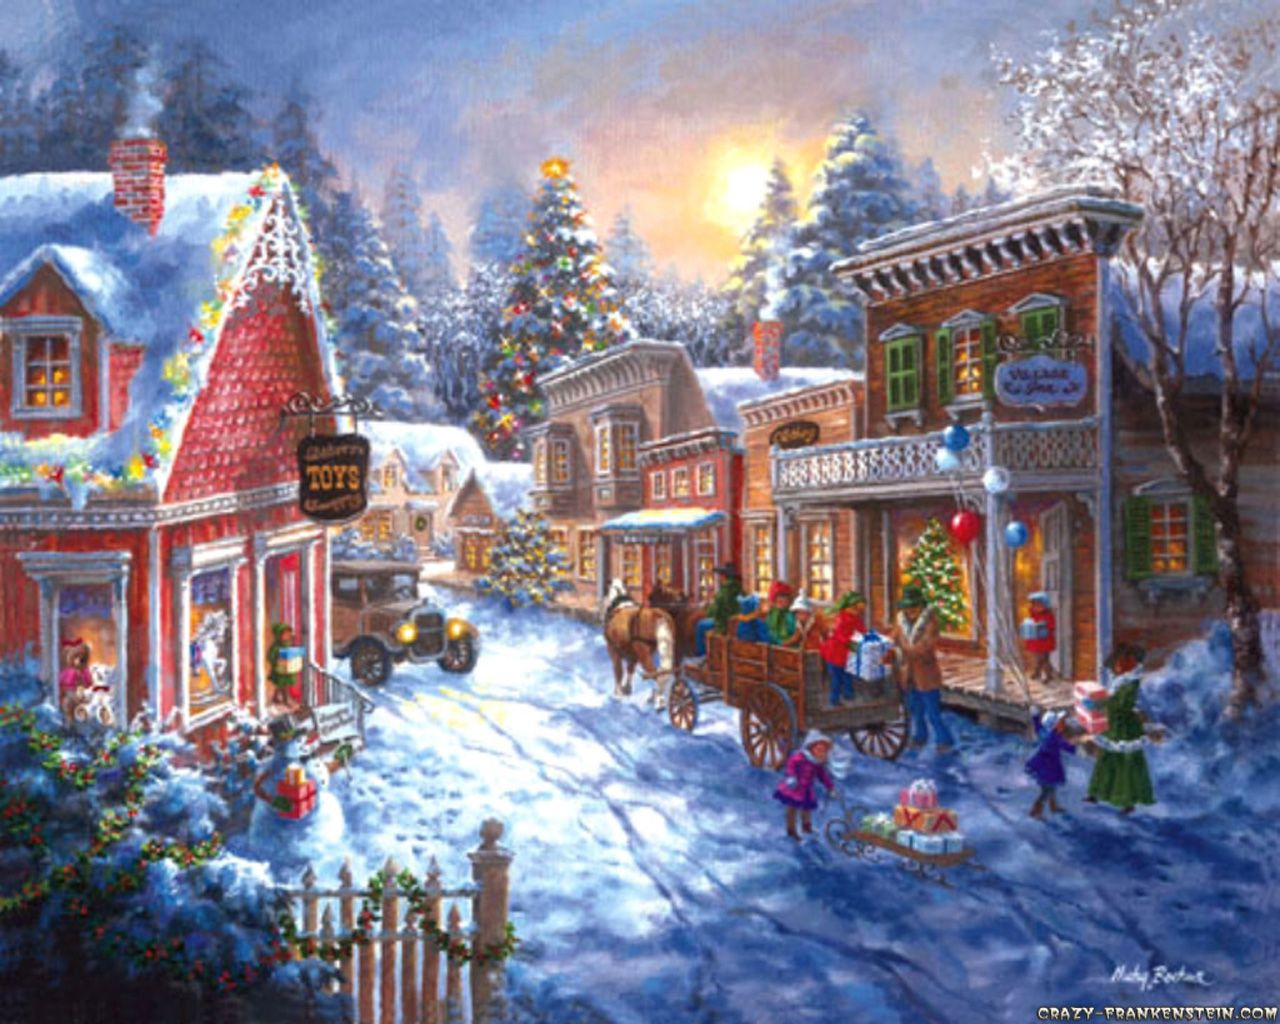 Christmas Scenes Wallpaper Christmas Town Scene Desktop Wallpaper Christmas Town Scene Christmas Scenes Christmas Town Christmas Paintings